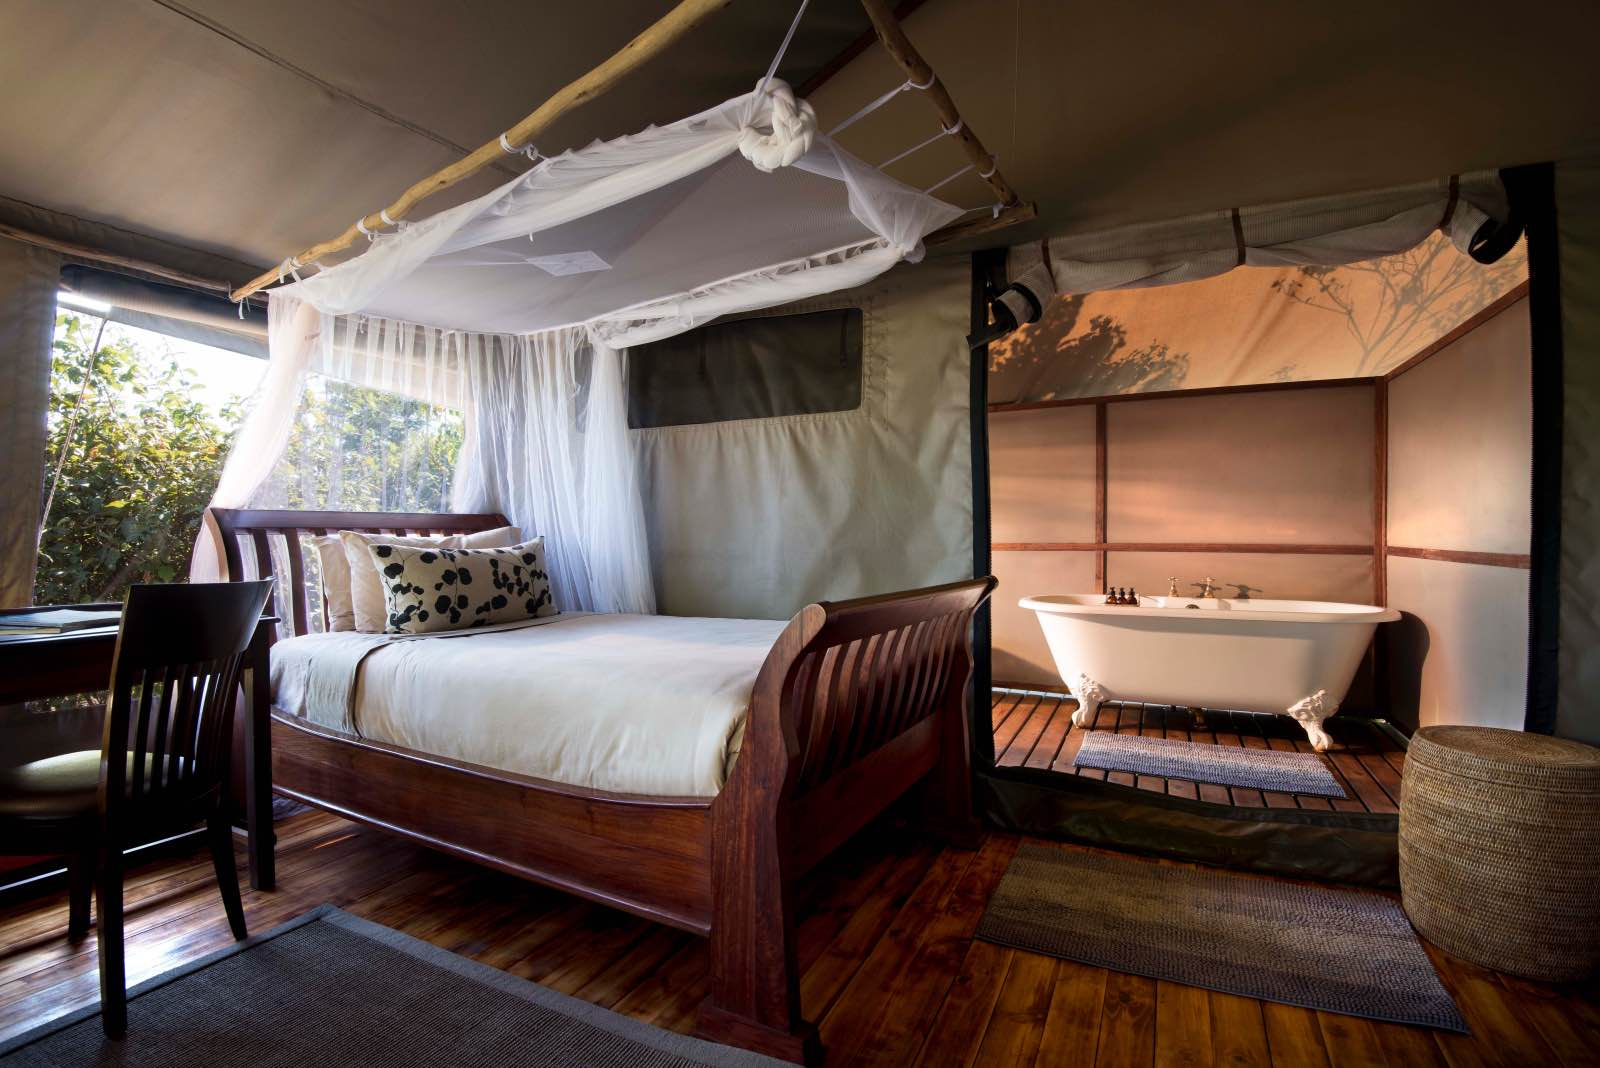 Inside the tented rooms at Linyanti Ebony with wooden floors and bath tubs